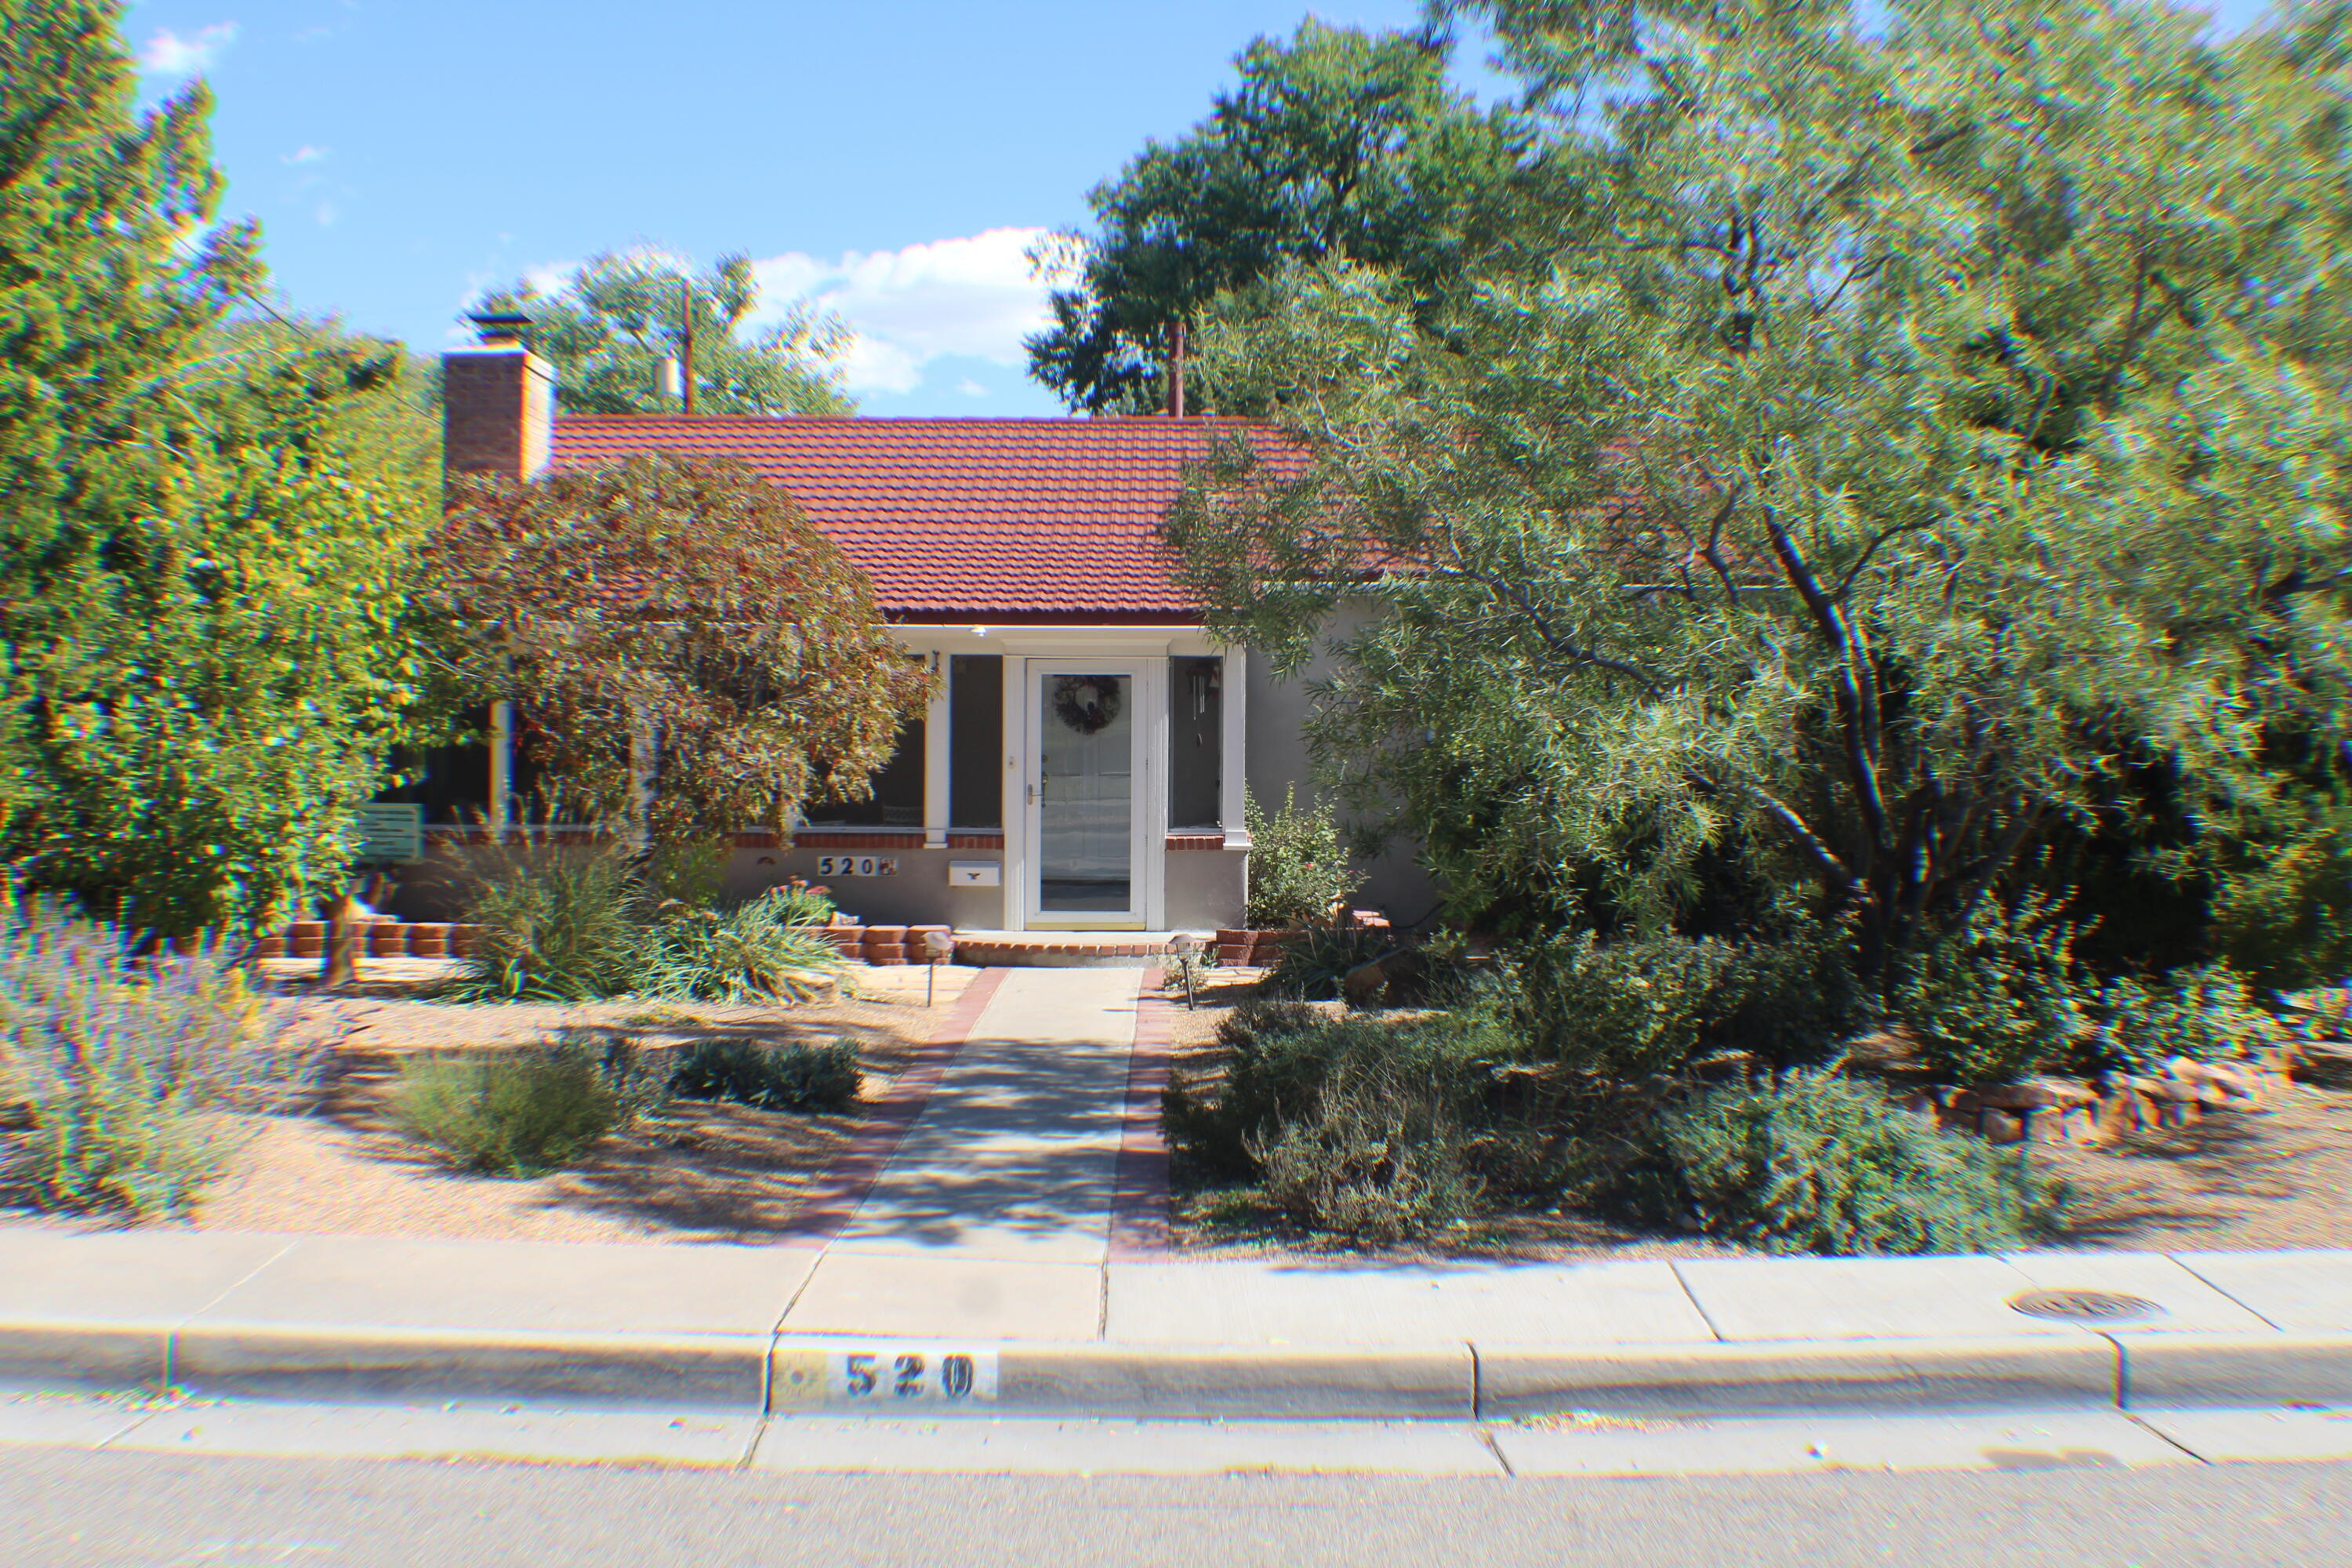 Fabulous home across the street from Albuquerque Country Club. Hardwood floors in beautiful condition. Two refrigerated air conditioning units and two furnaces. Many lovely spaces to relax in. Front porch, enclosed patio, living room & family room. Very private backyard with goldfish pond and and gazebo.